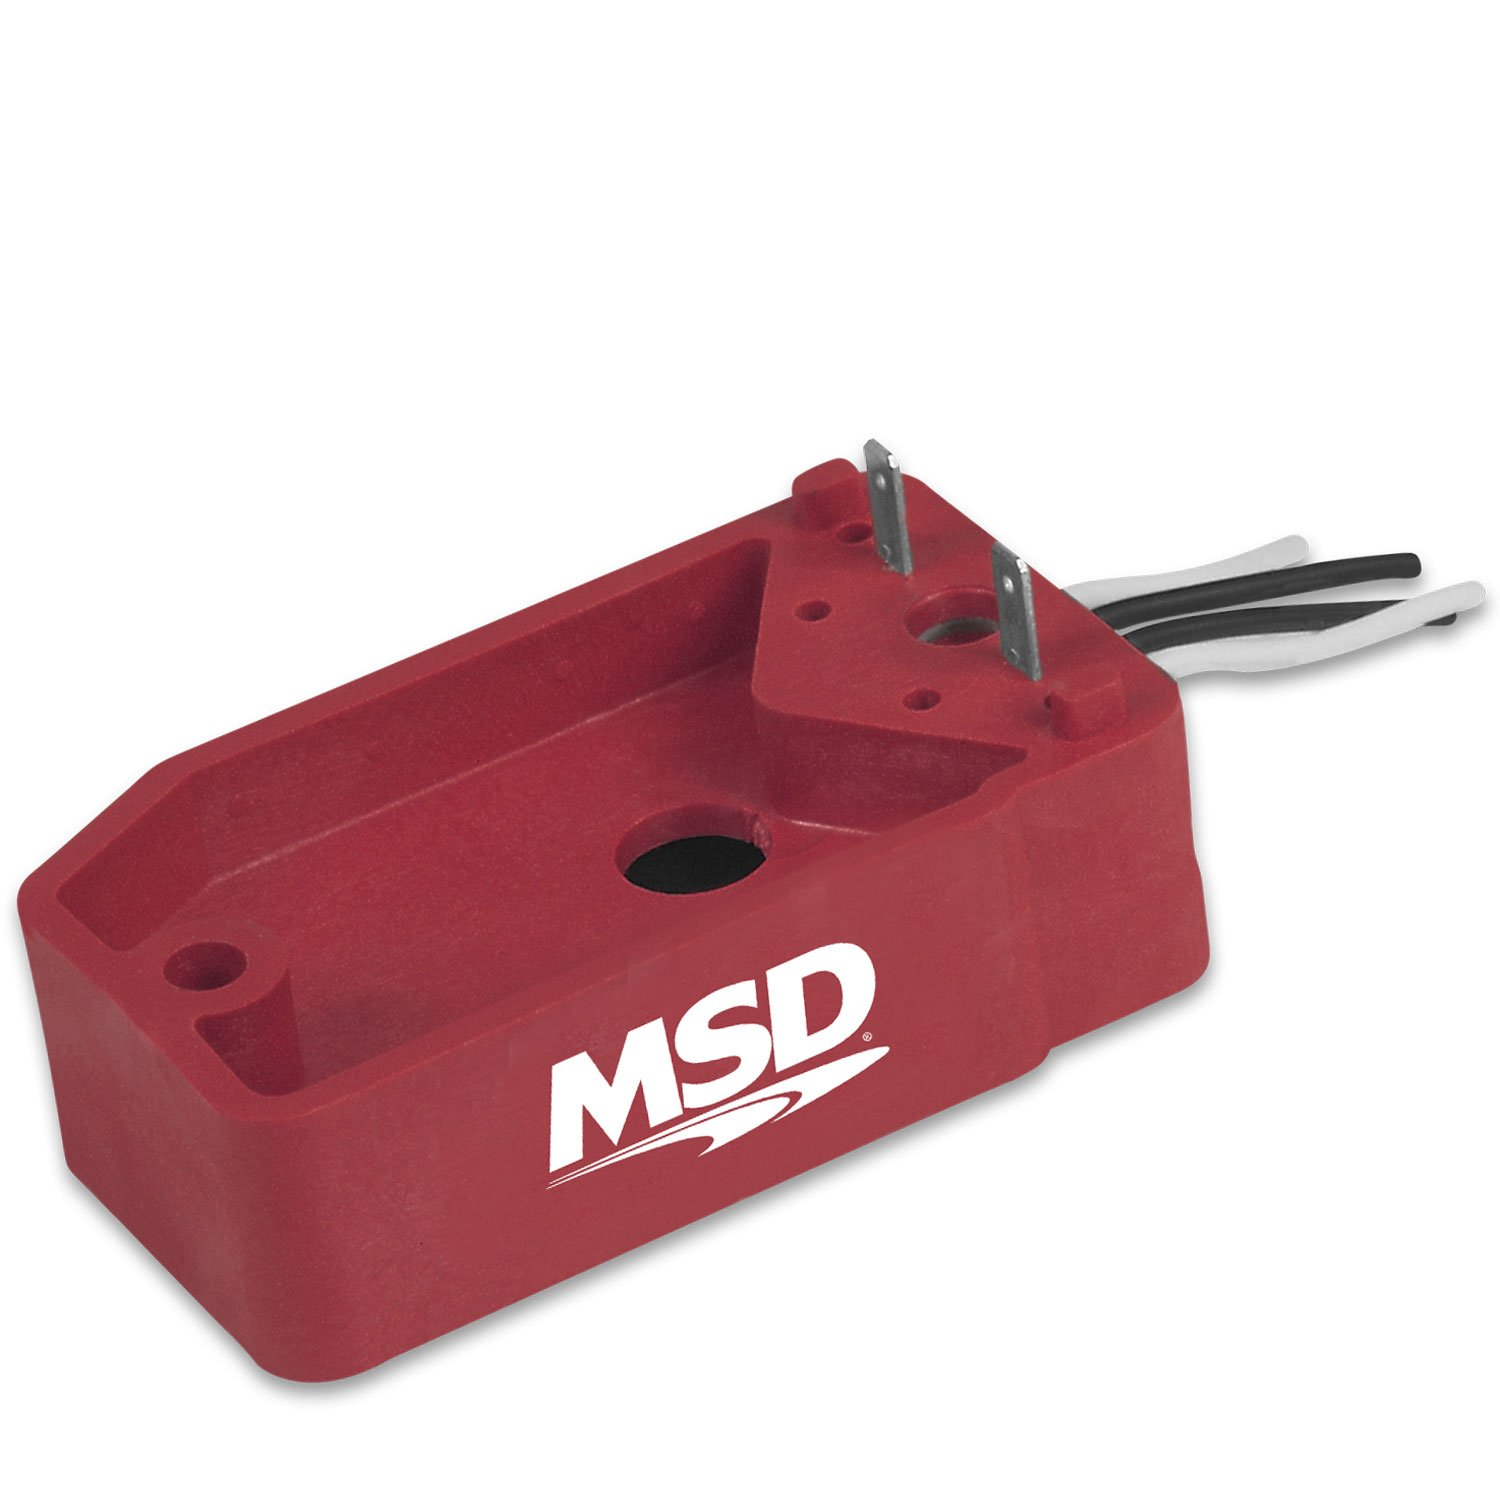 Distributorless msd performance products tech support 888 258 3835 coil interface blockgm dual tower coils publicscrutiny Choice Image